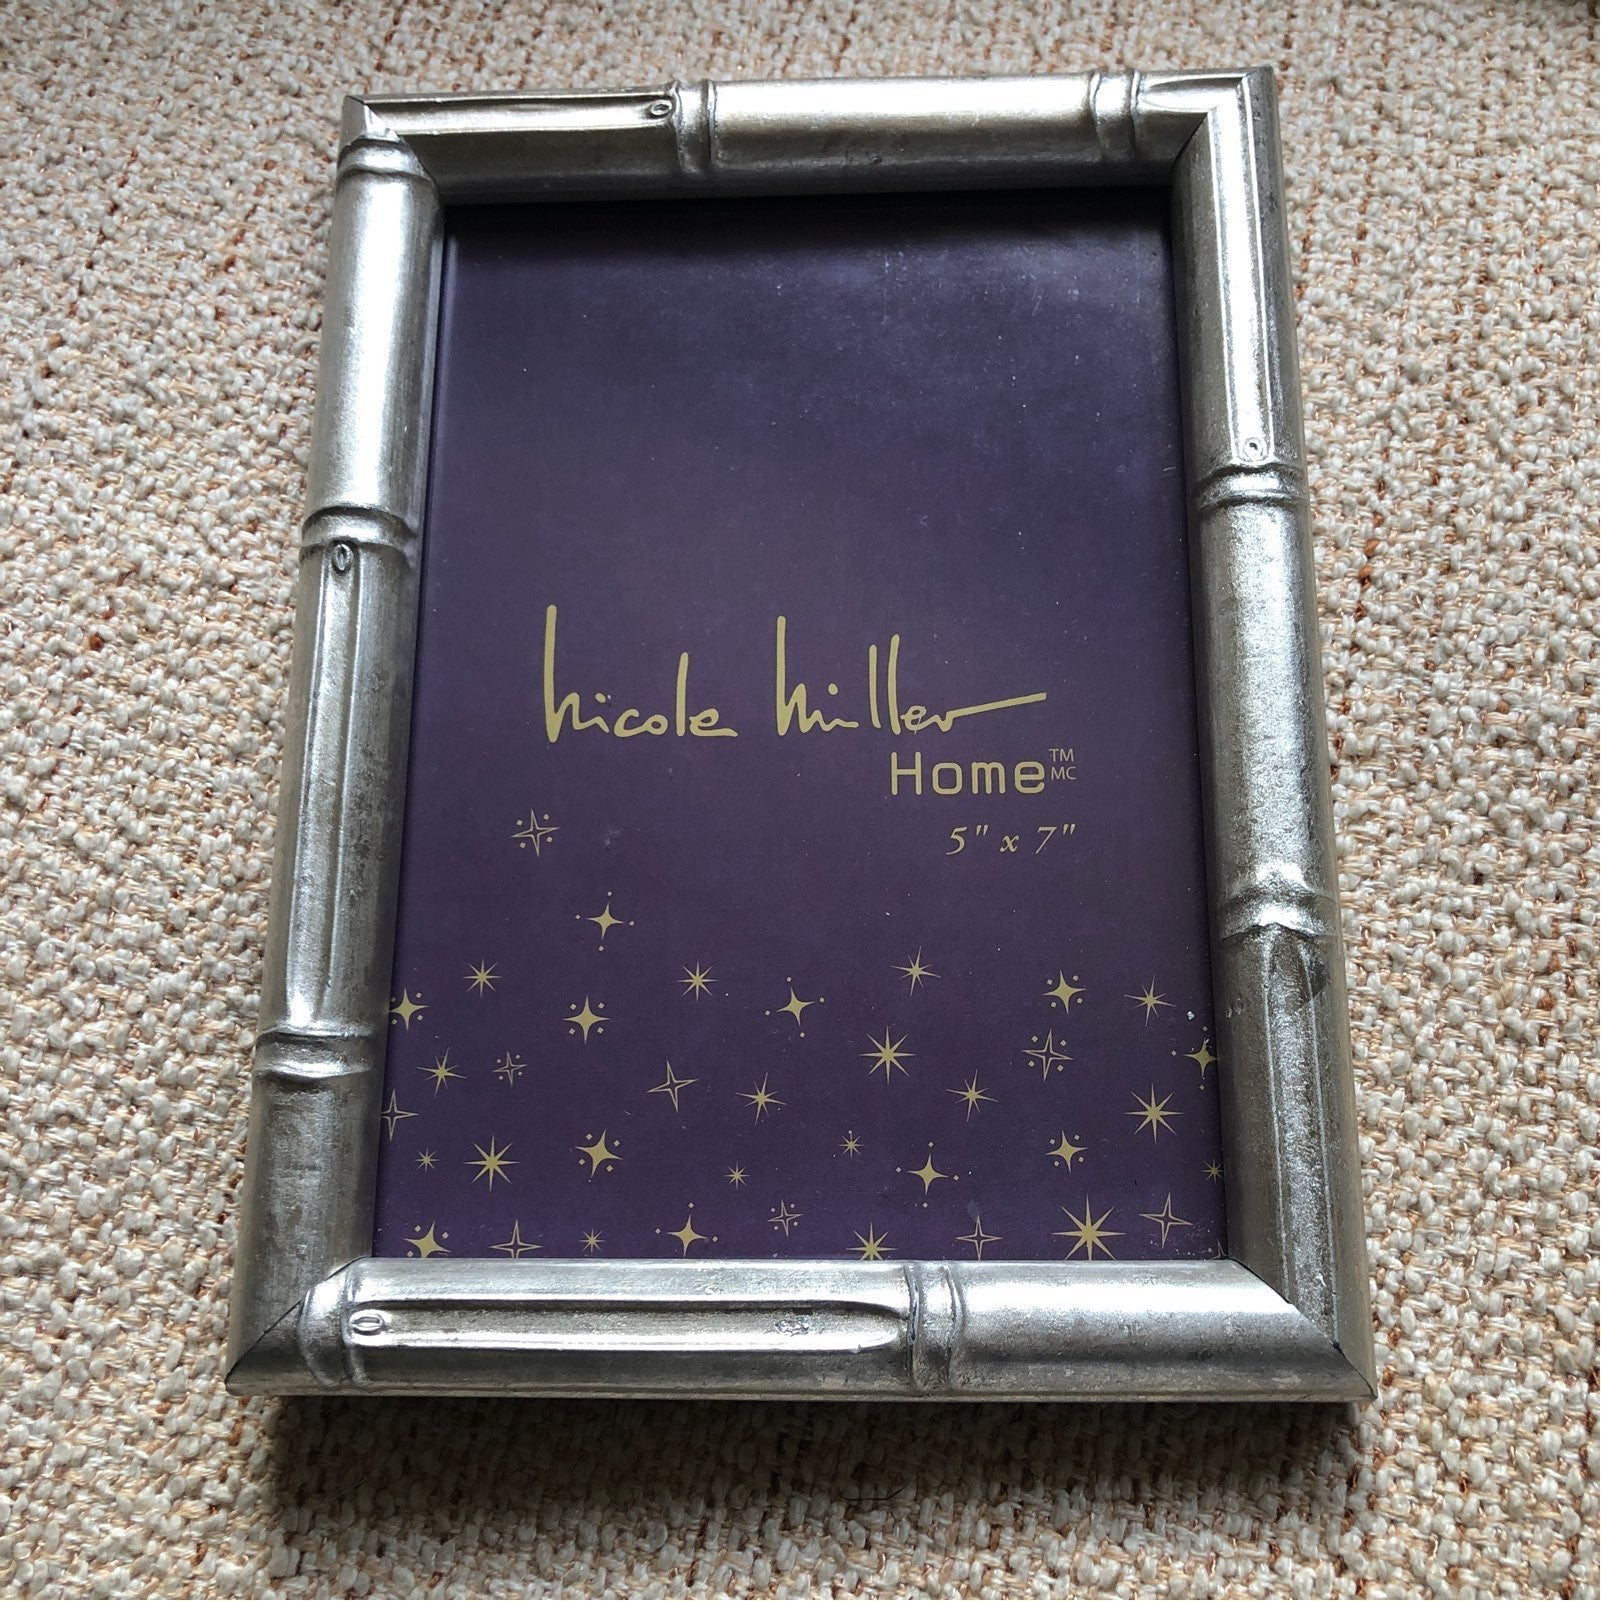 New-Nicole Miller Home 5x7 frame